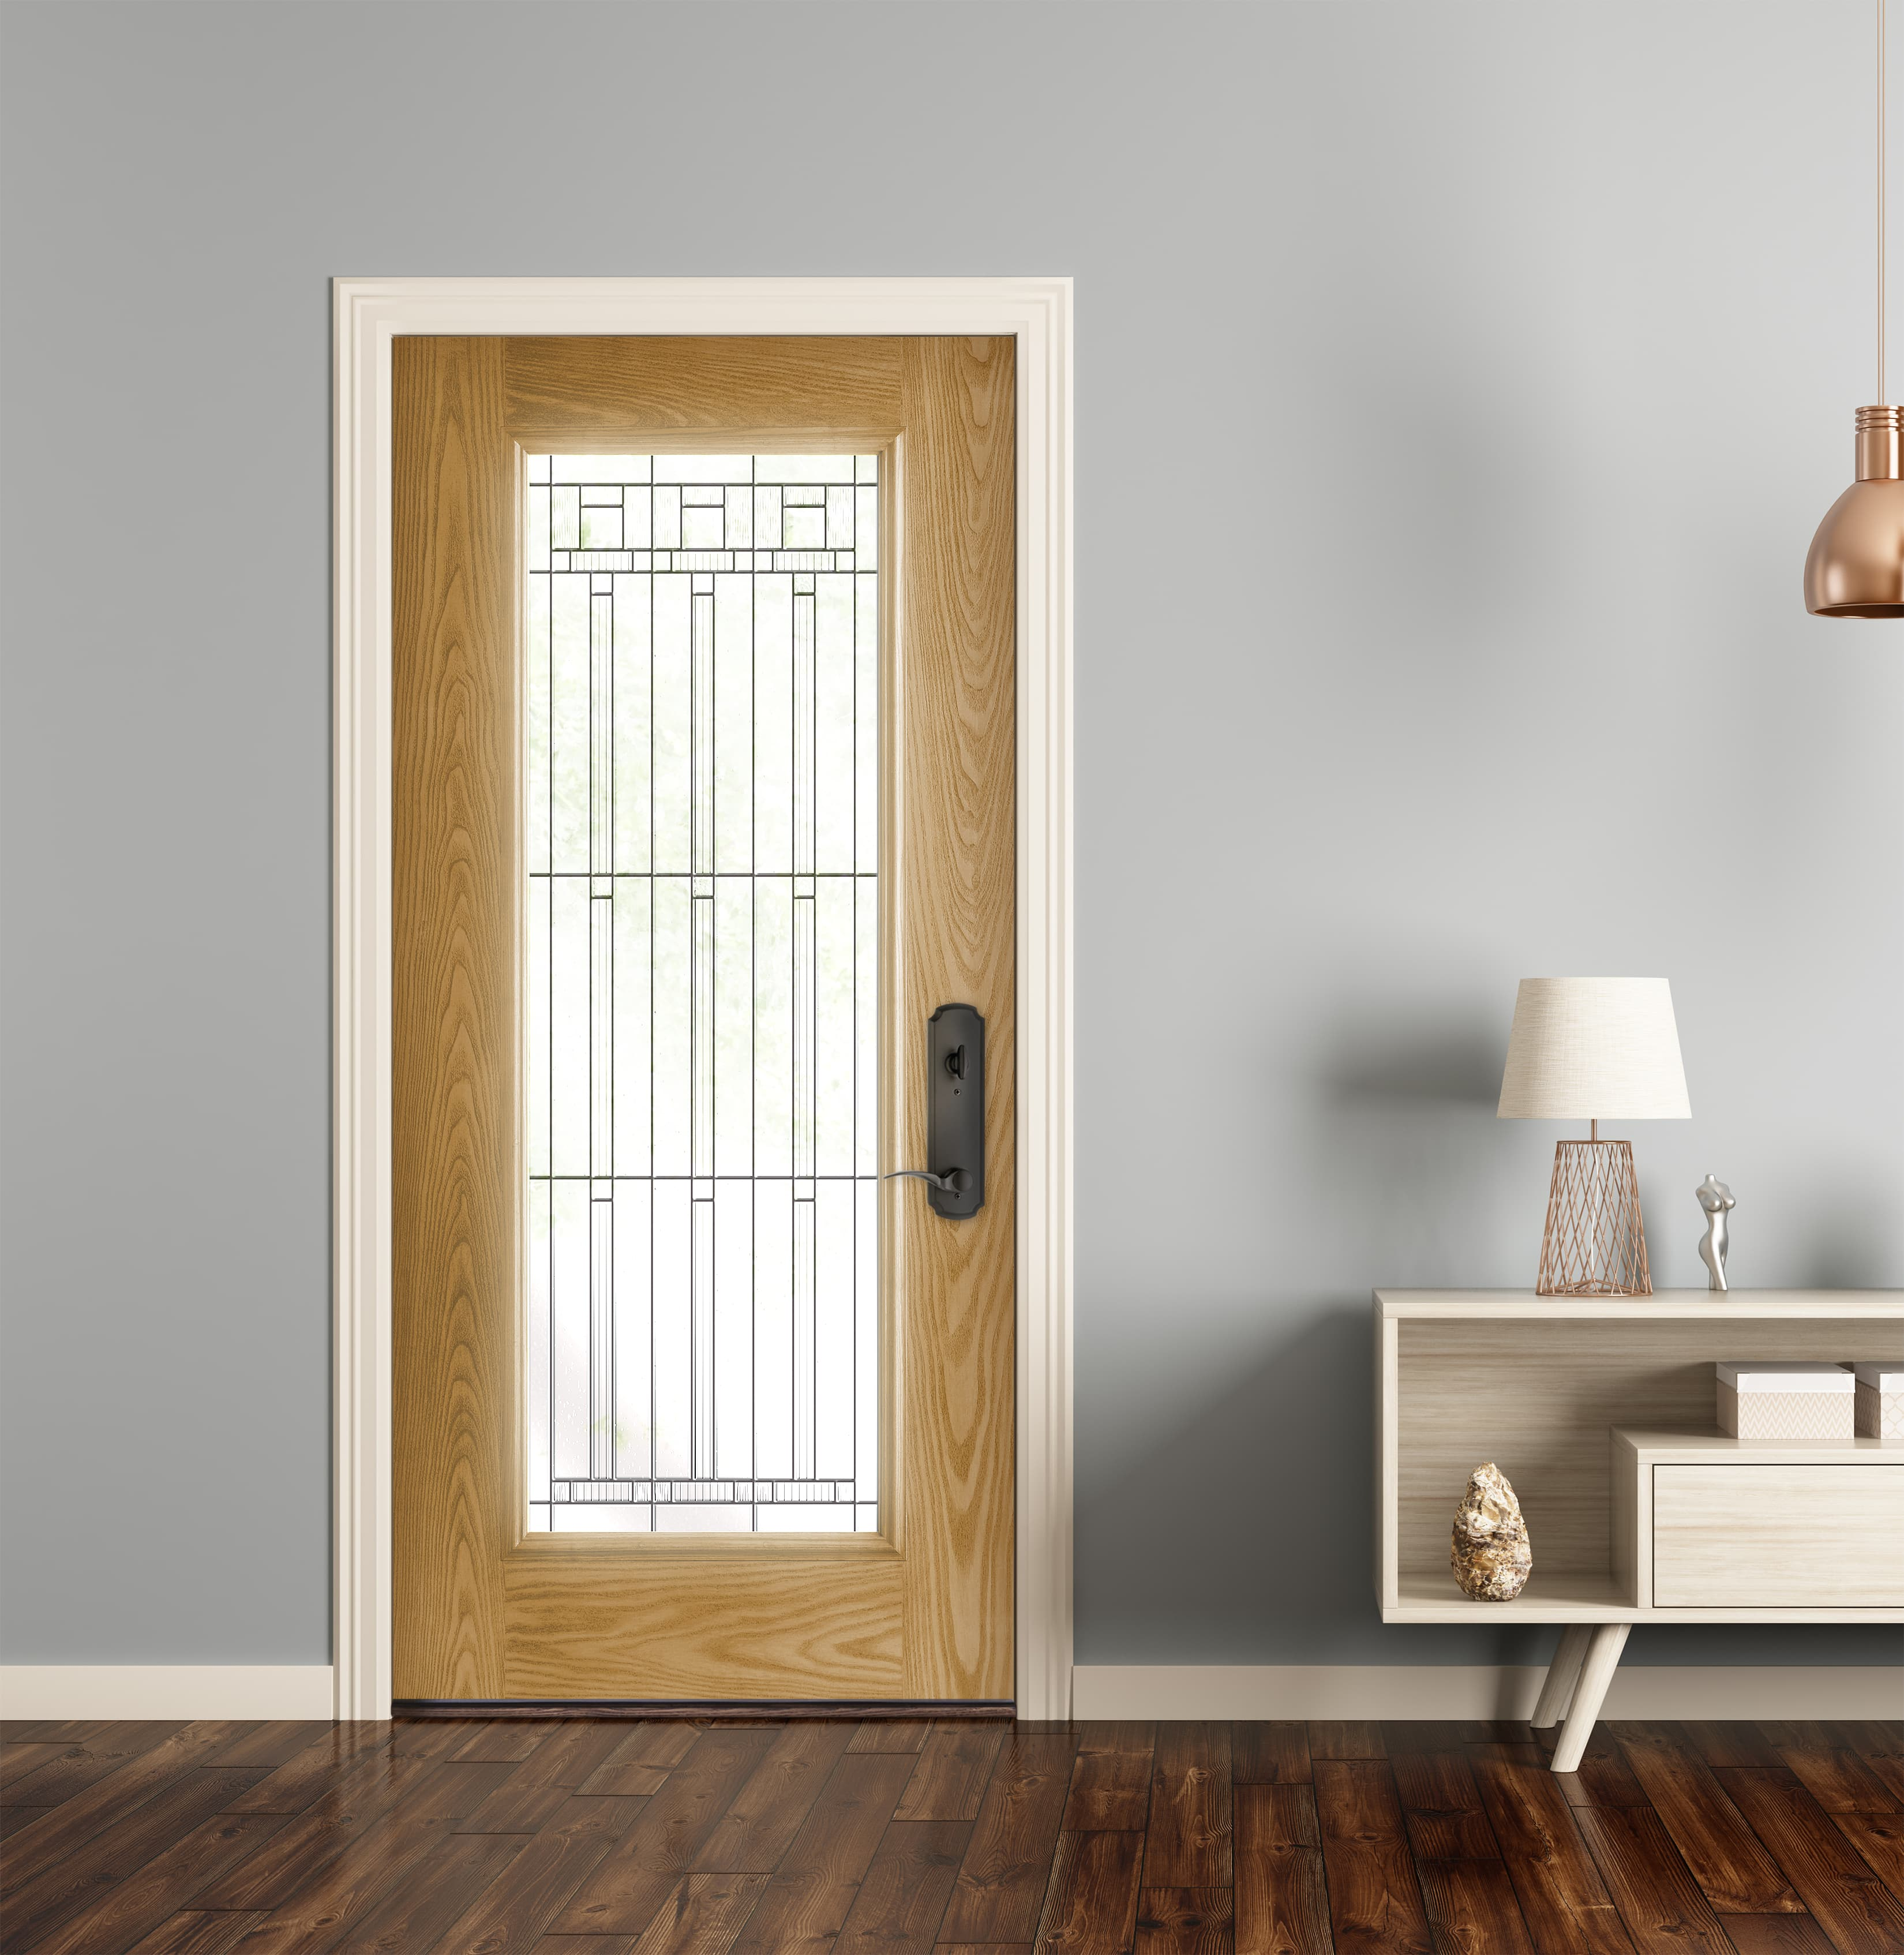 Wheat stain fiberglass door with contemporary glass and black hardware